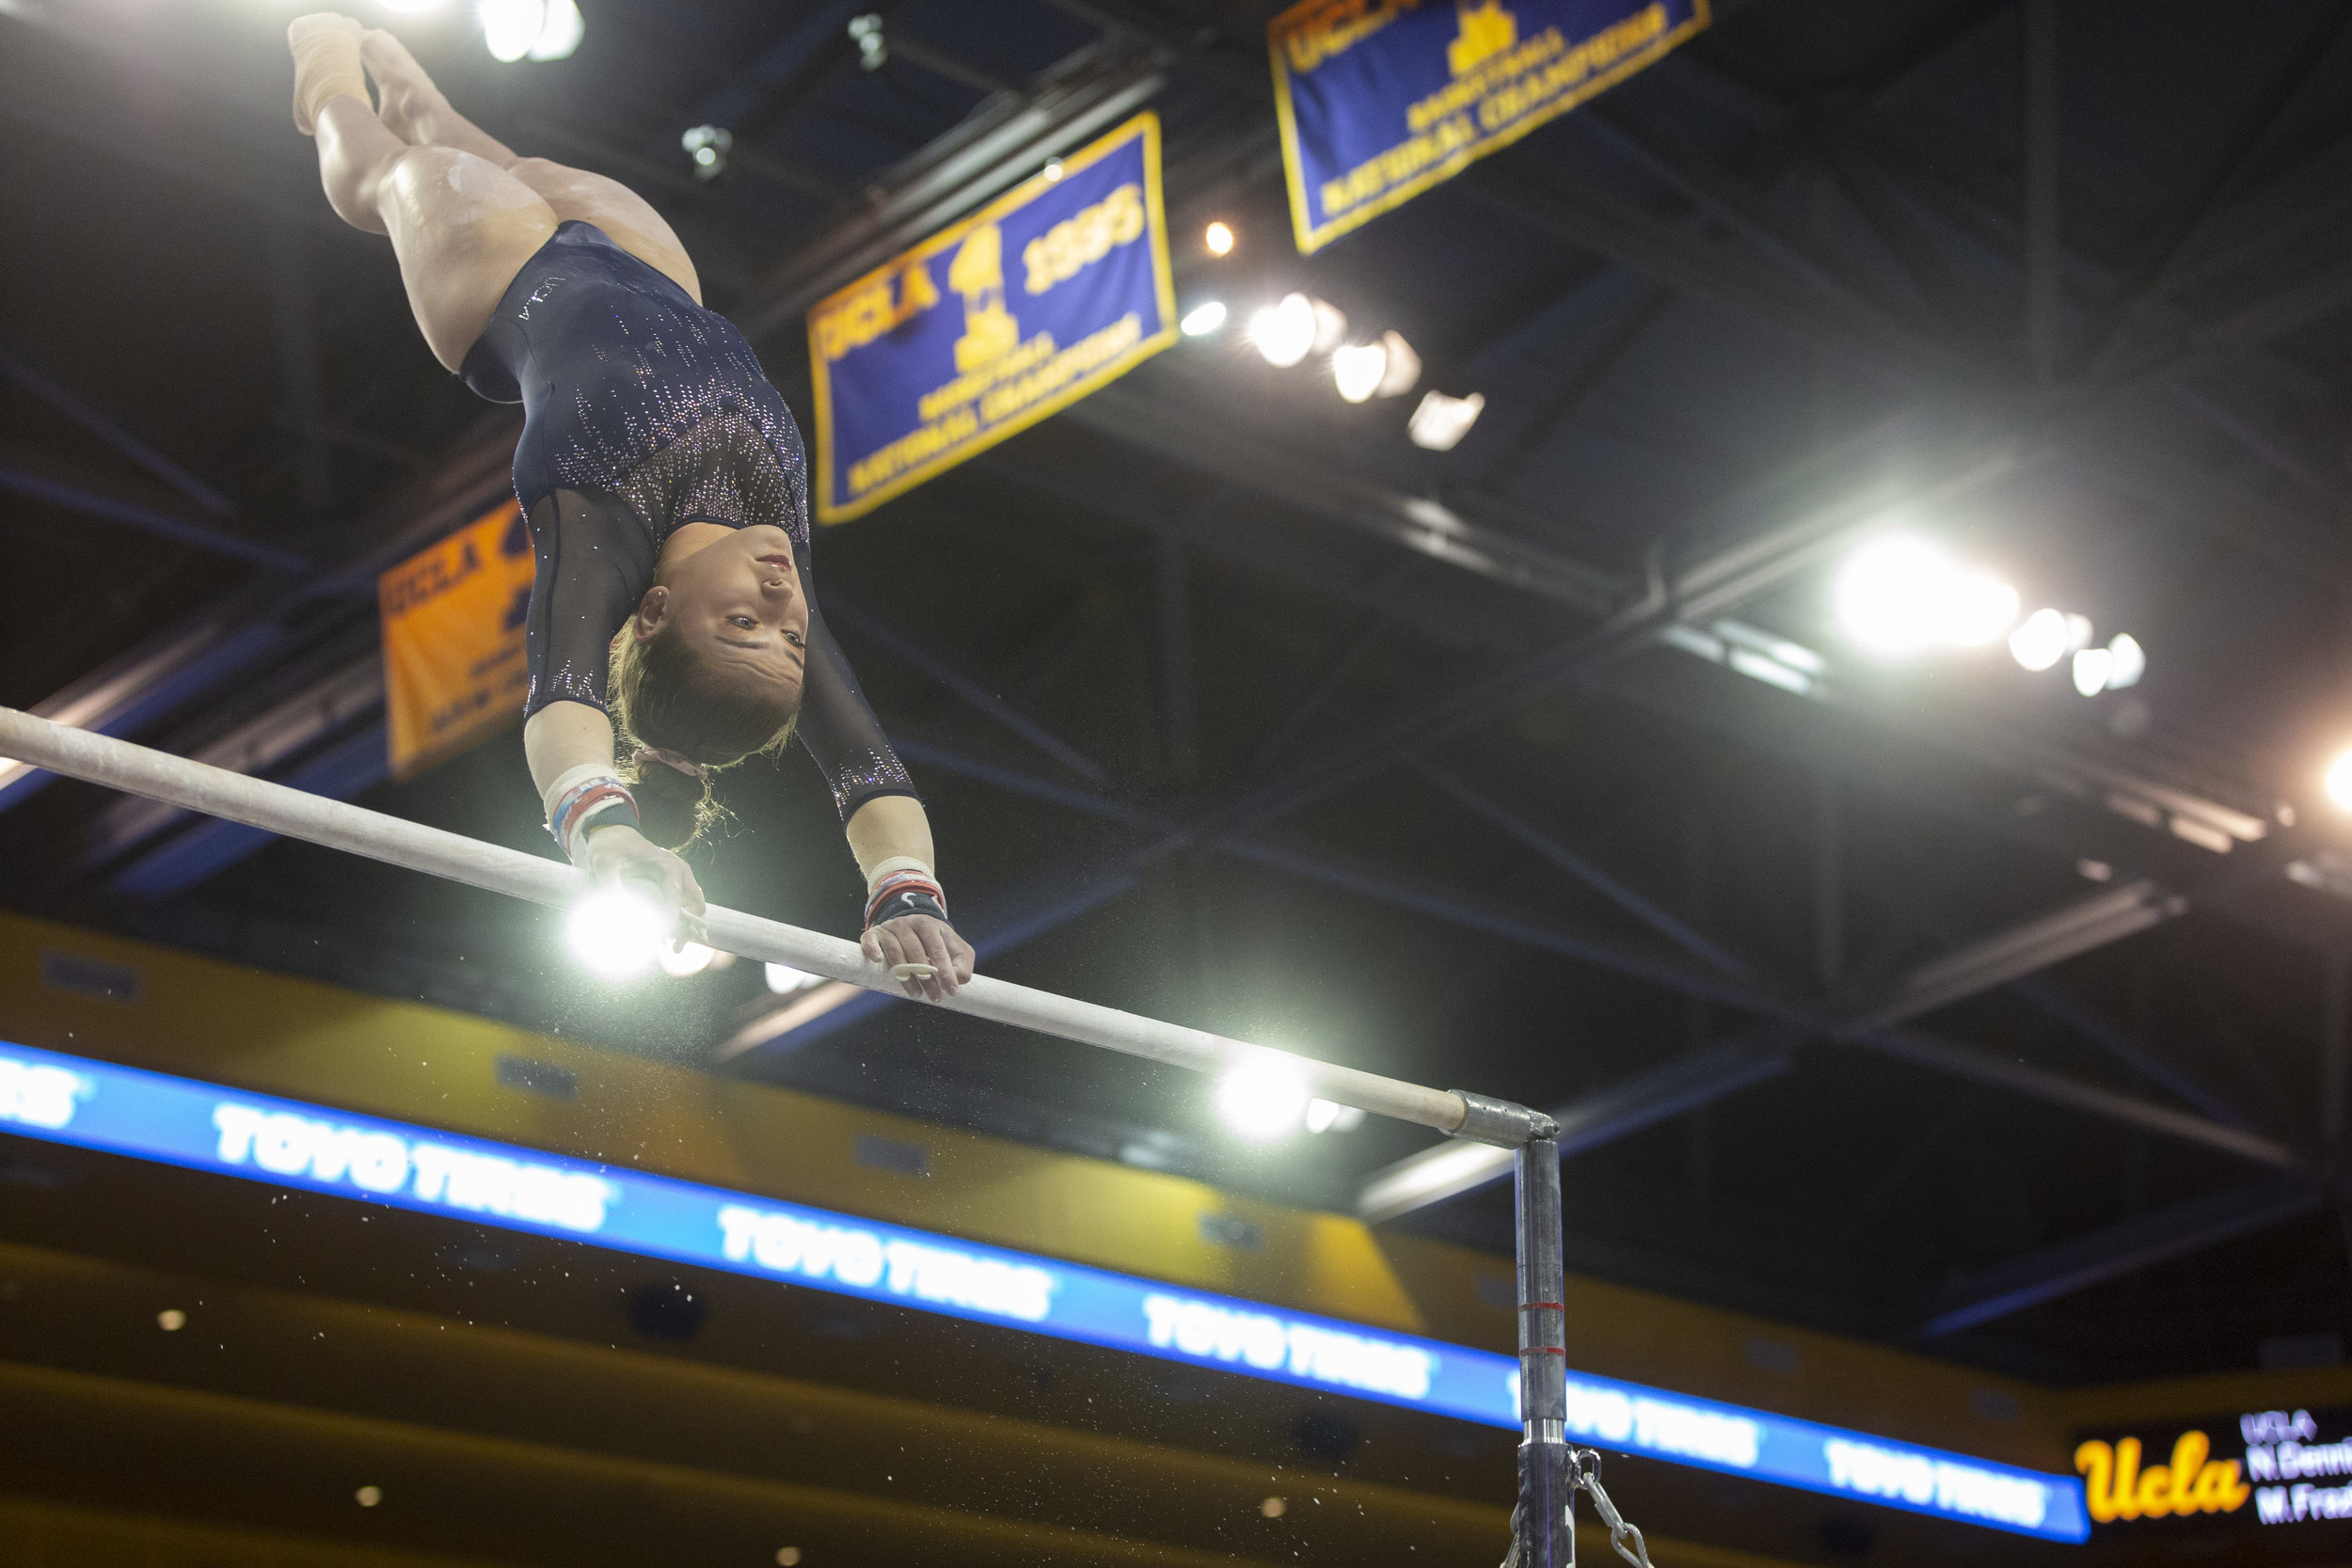 "UCLA Gymnastics Rekindles Joy, The Washington Post - ""You can train champions to the highest level without demeaning them, disrespecting them and taking away their joy. You absolutely can,"" Coach Valorie Kondos Field said. Alongside writer Liz Clarke I told the story of the UCLA Gymnastics team and the supportive, joyful atmosphere that Coach Val has fostered in a sport that is still reeling from the sexual abuse crimes by USA gymnastics doctor Larry Nassar."